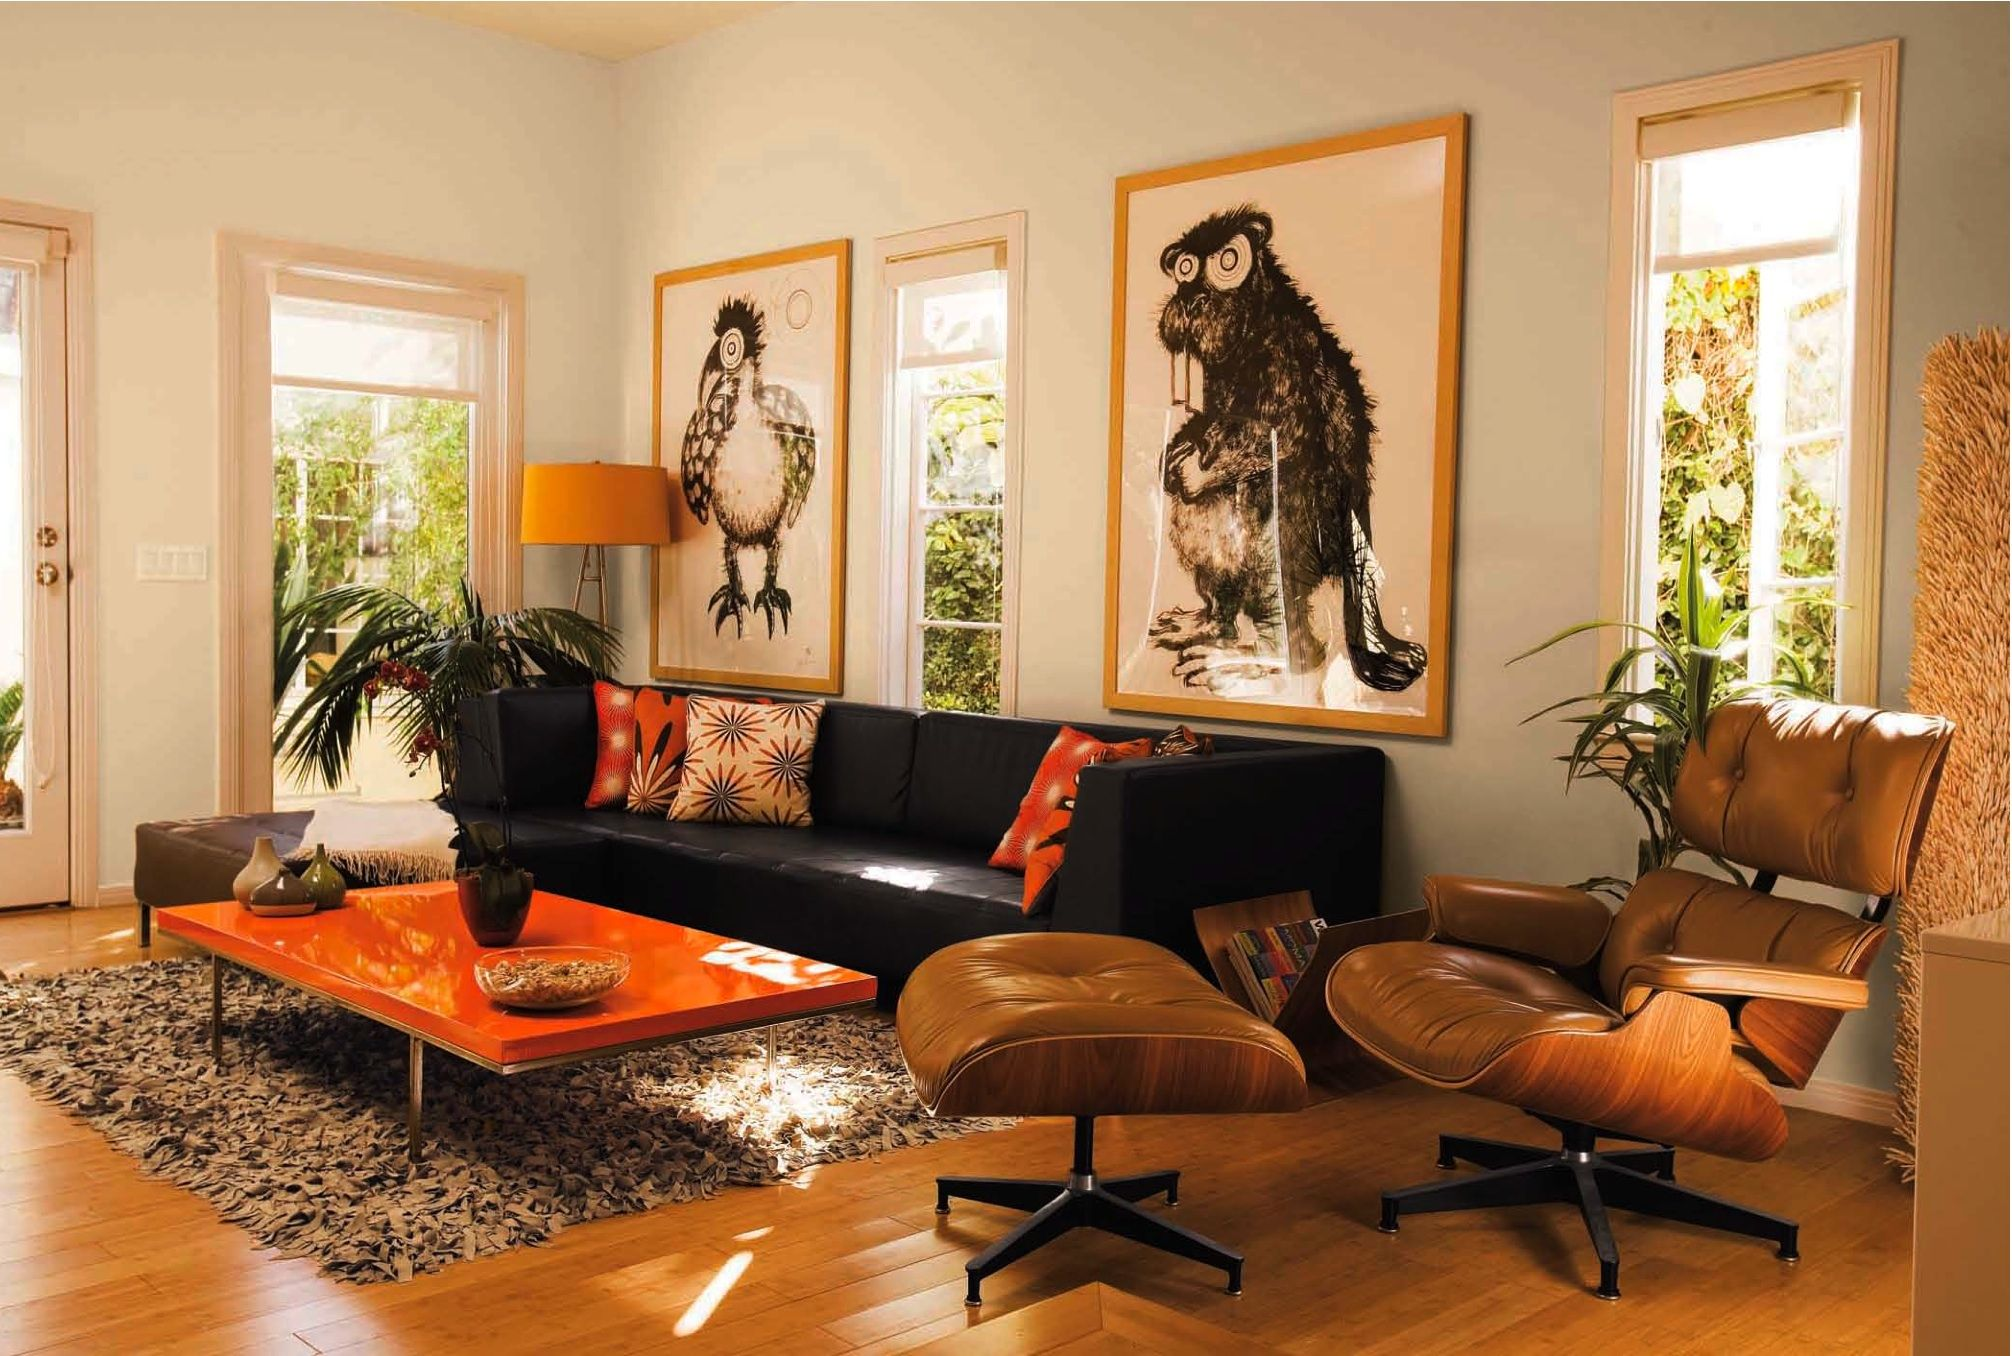 Living Room Decor With Orange And Brown Decorating Ideas Amp Home De